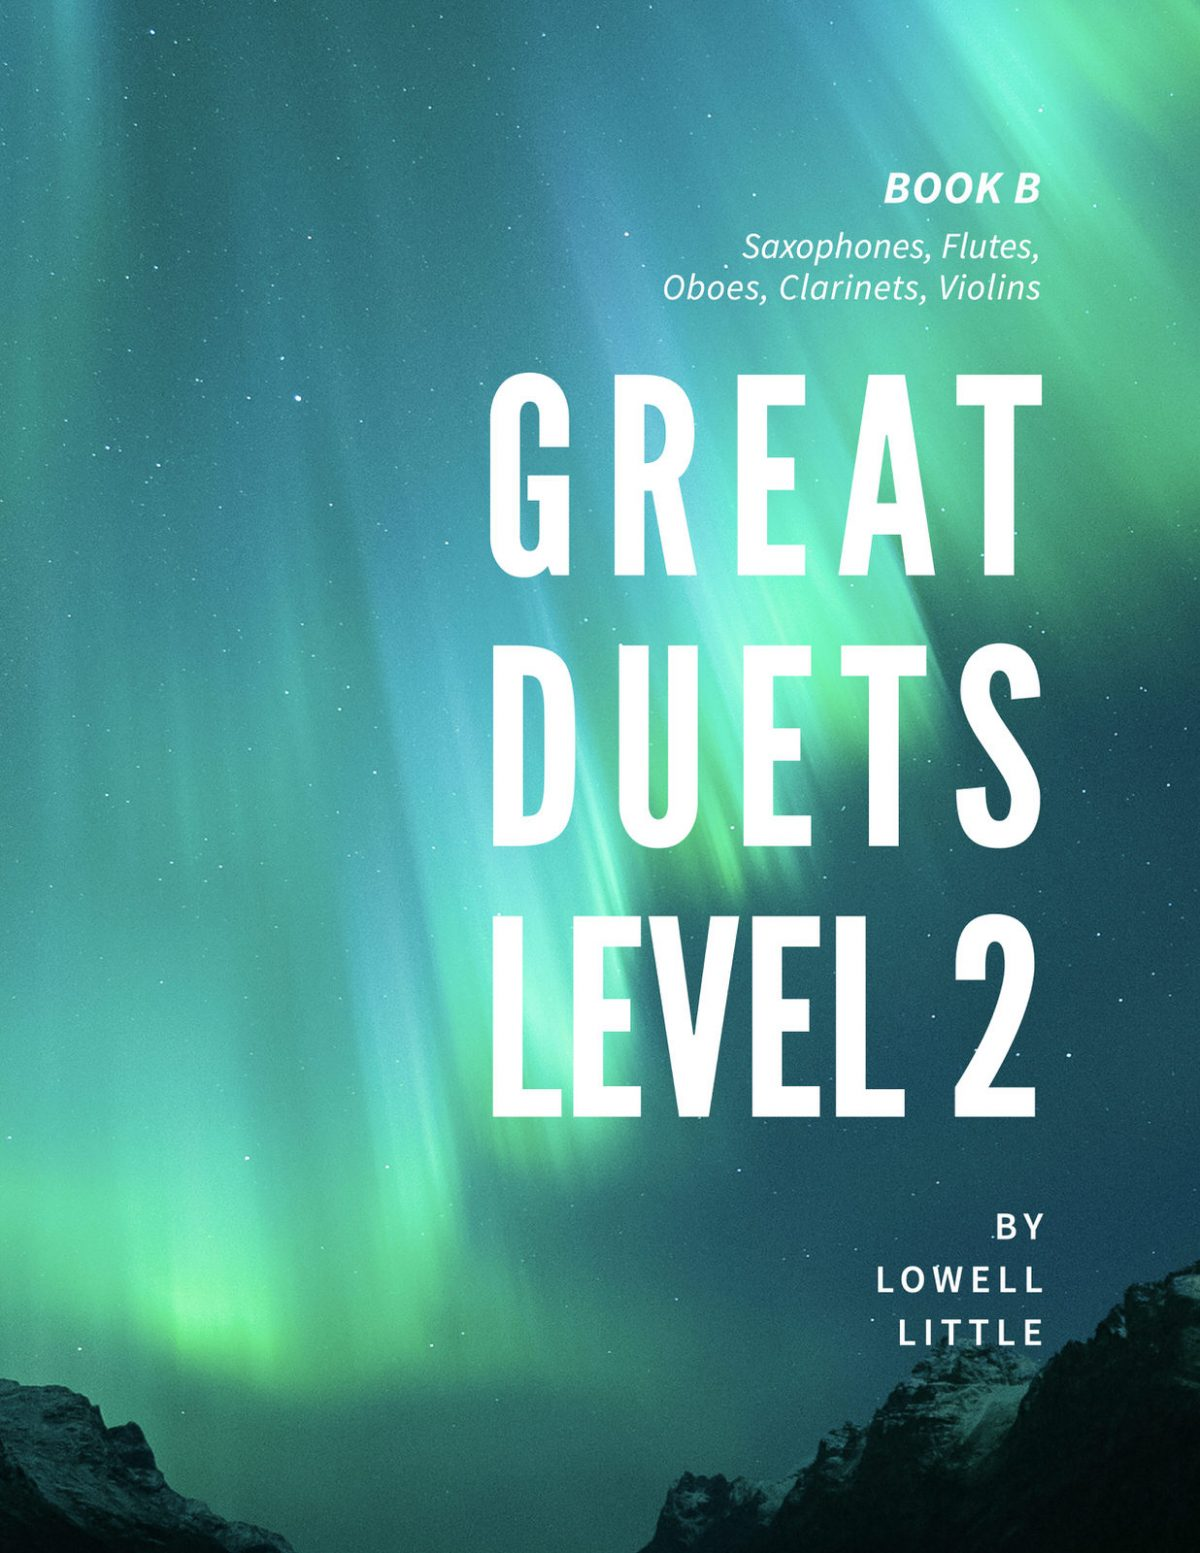 Little, Great Duets Level 2 Book B-p01